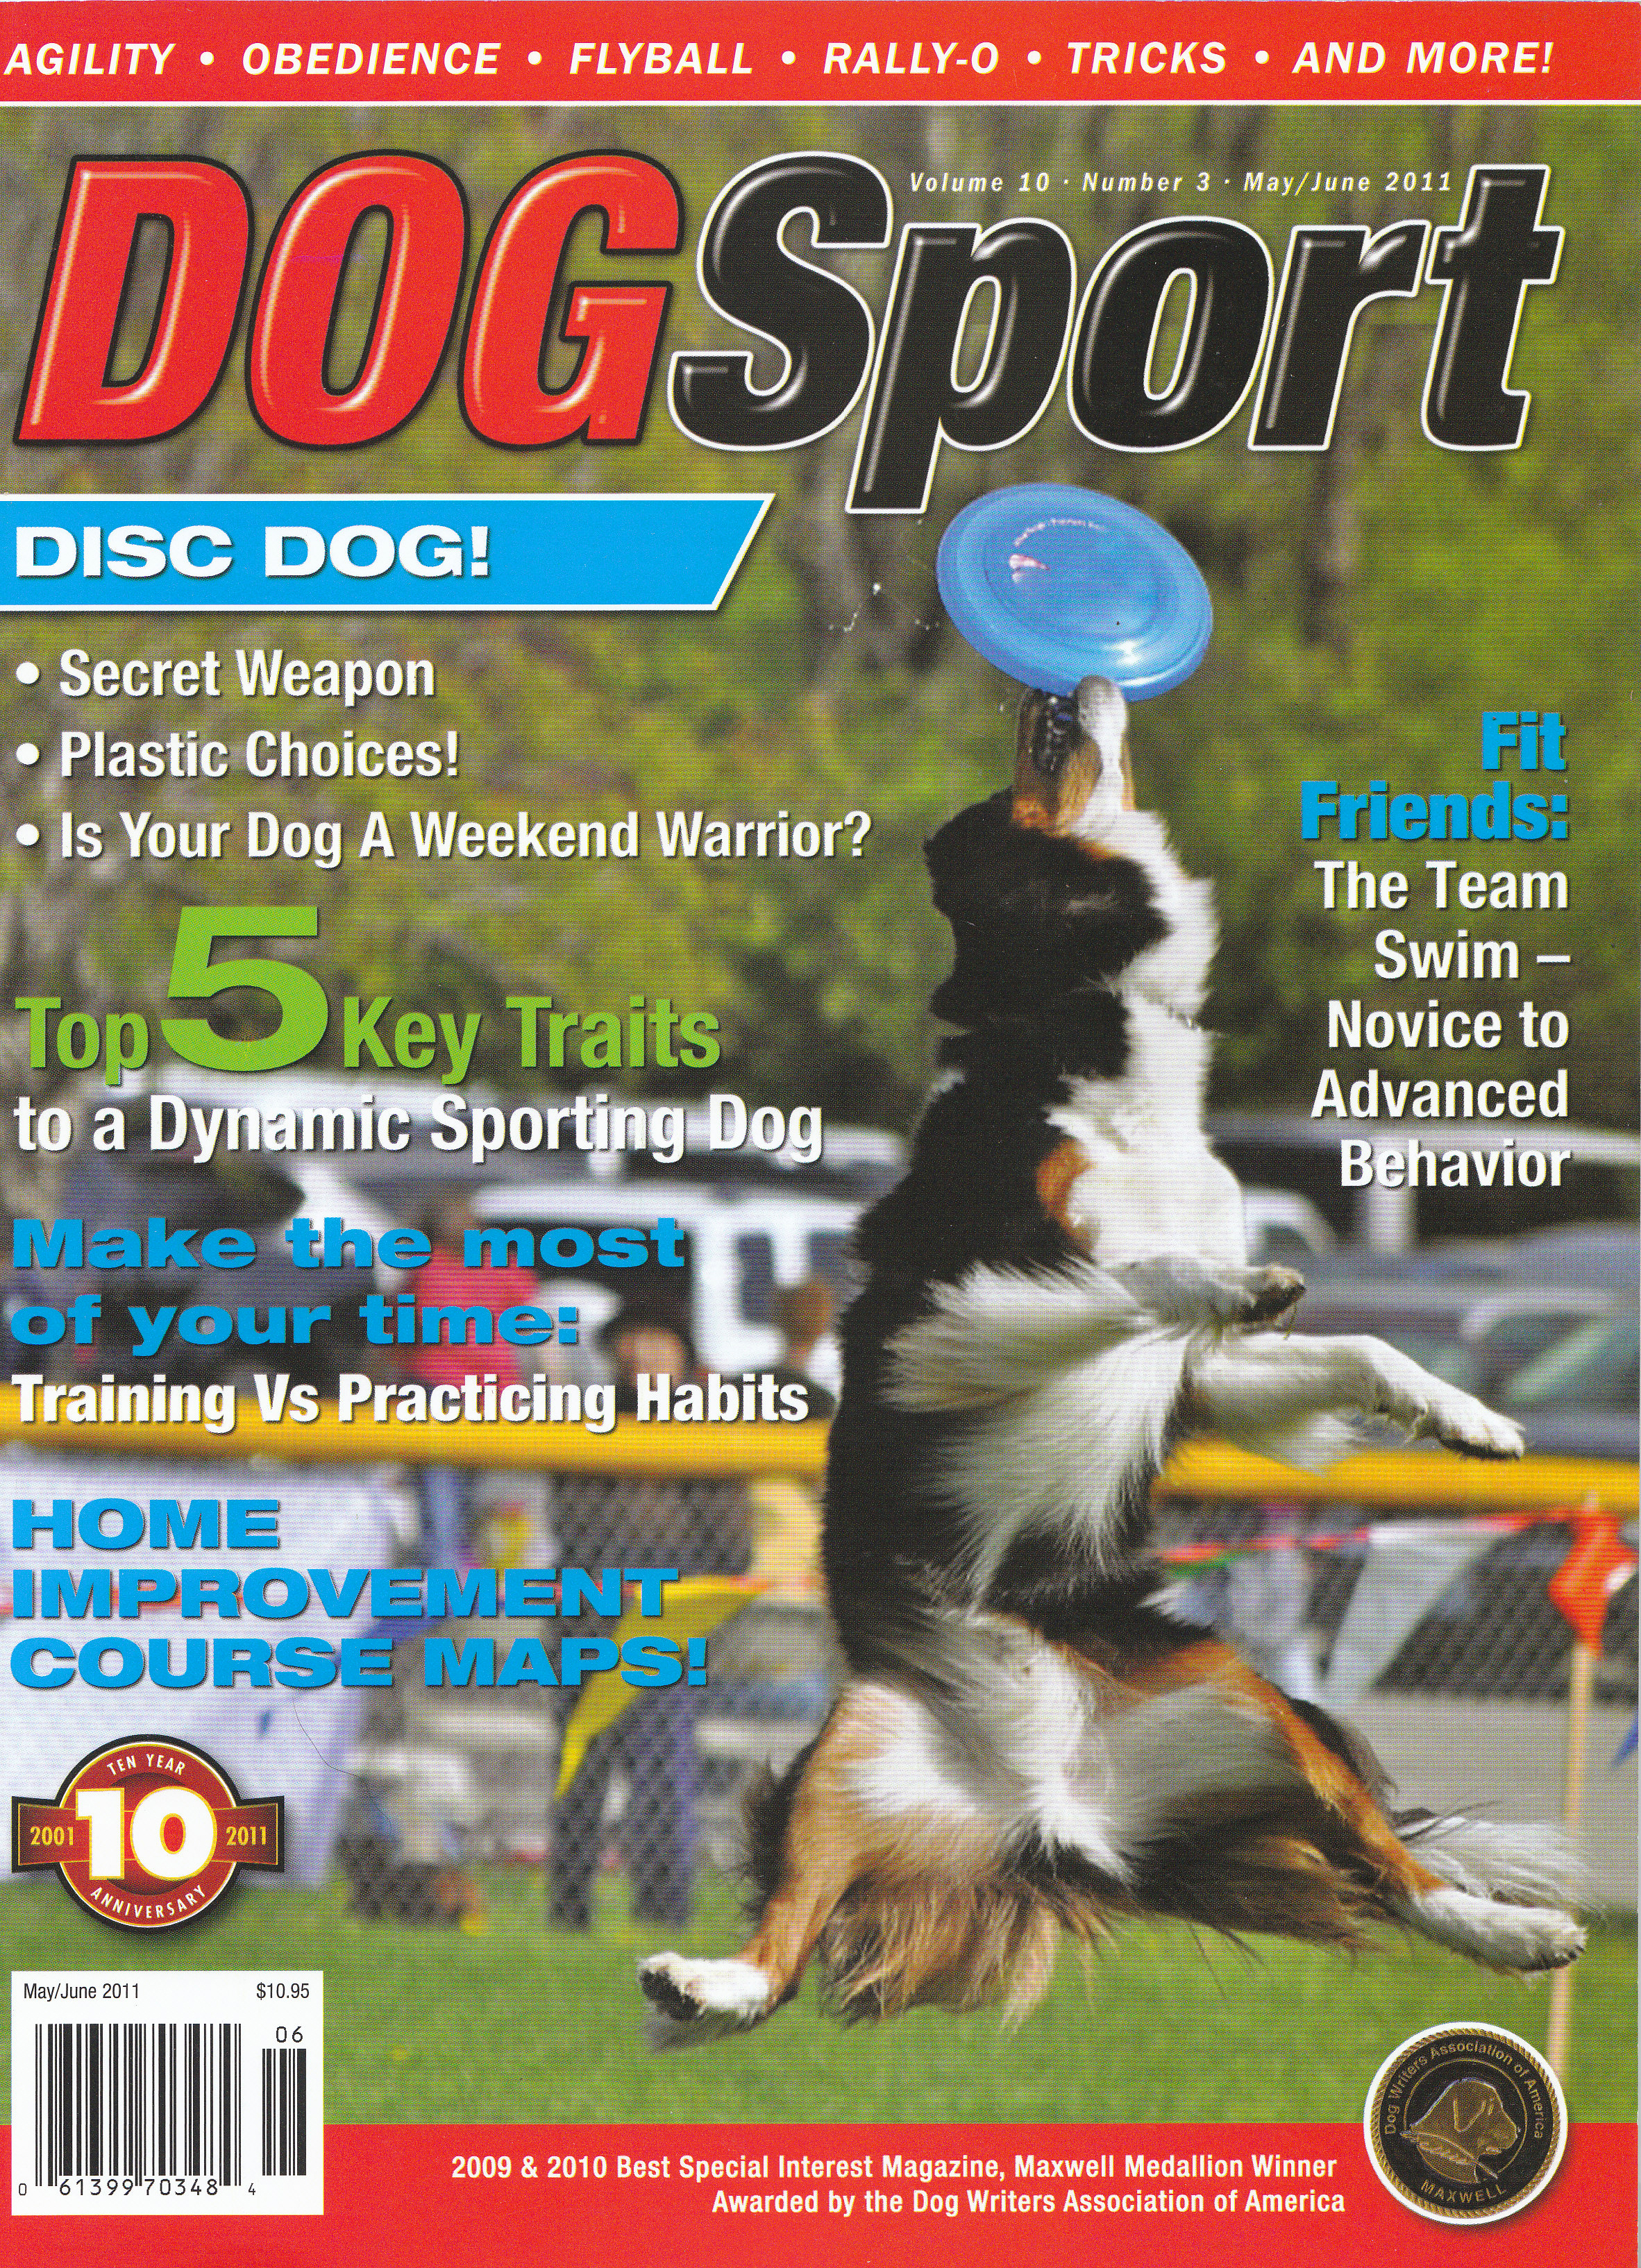 Towser was the first Frisbee dog ever to grace the cover of DogSport magazine!